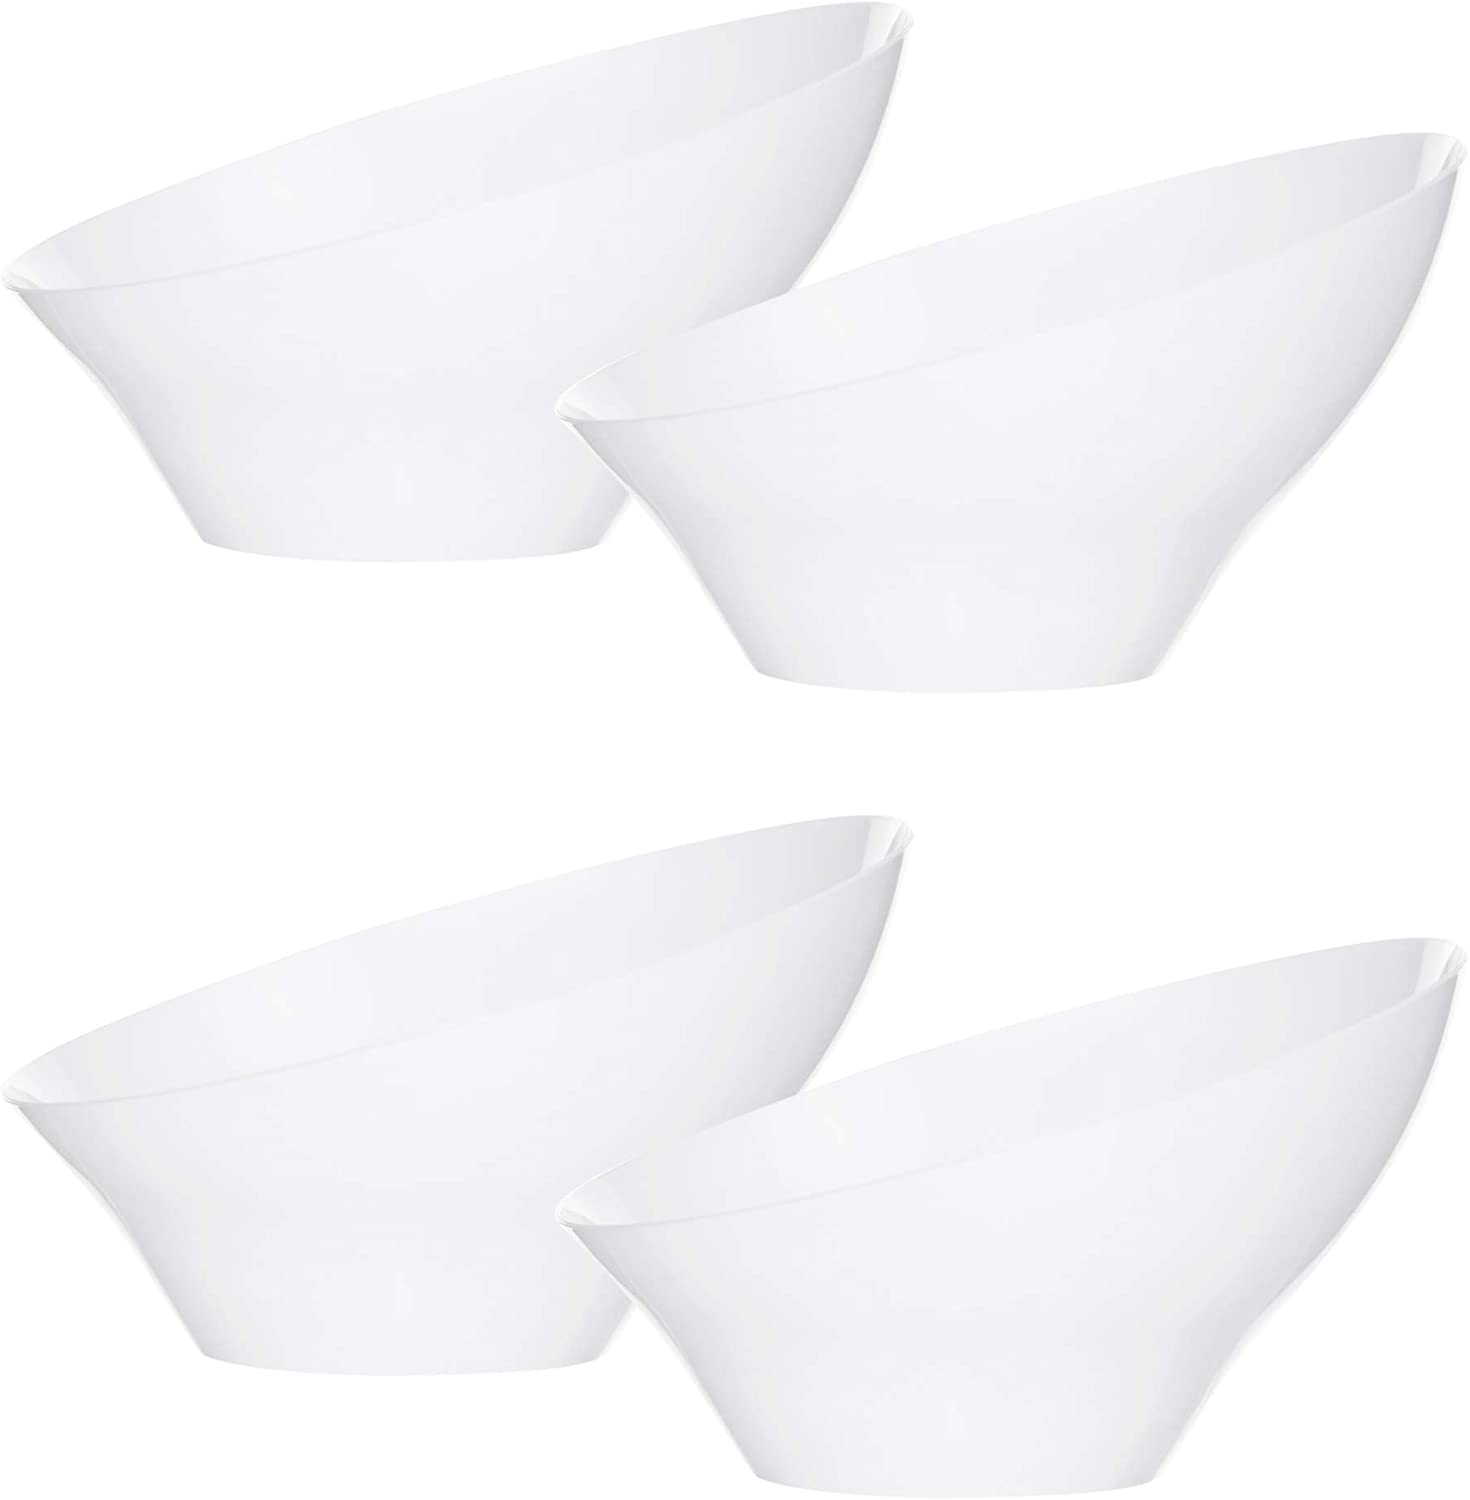 Plasticpro Disposable Angled Plastic Bowls Round Small Serving Bowl, Elegant for Party's, Snack, or Salad Bowl, White, Pack of 8